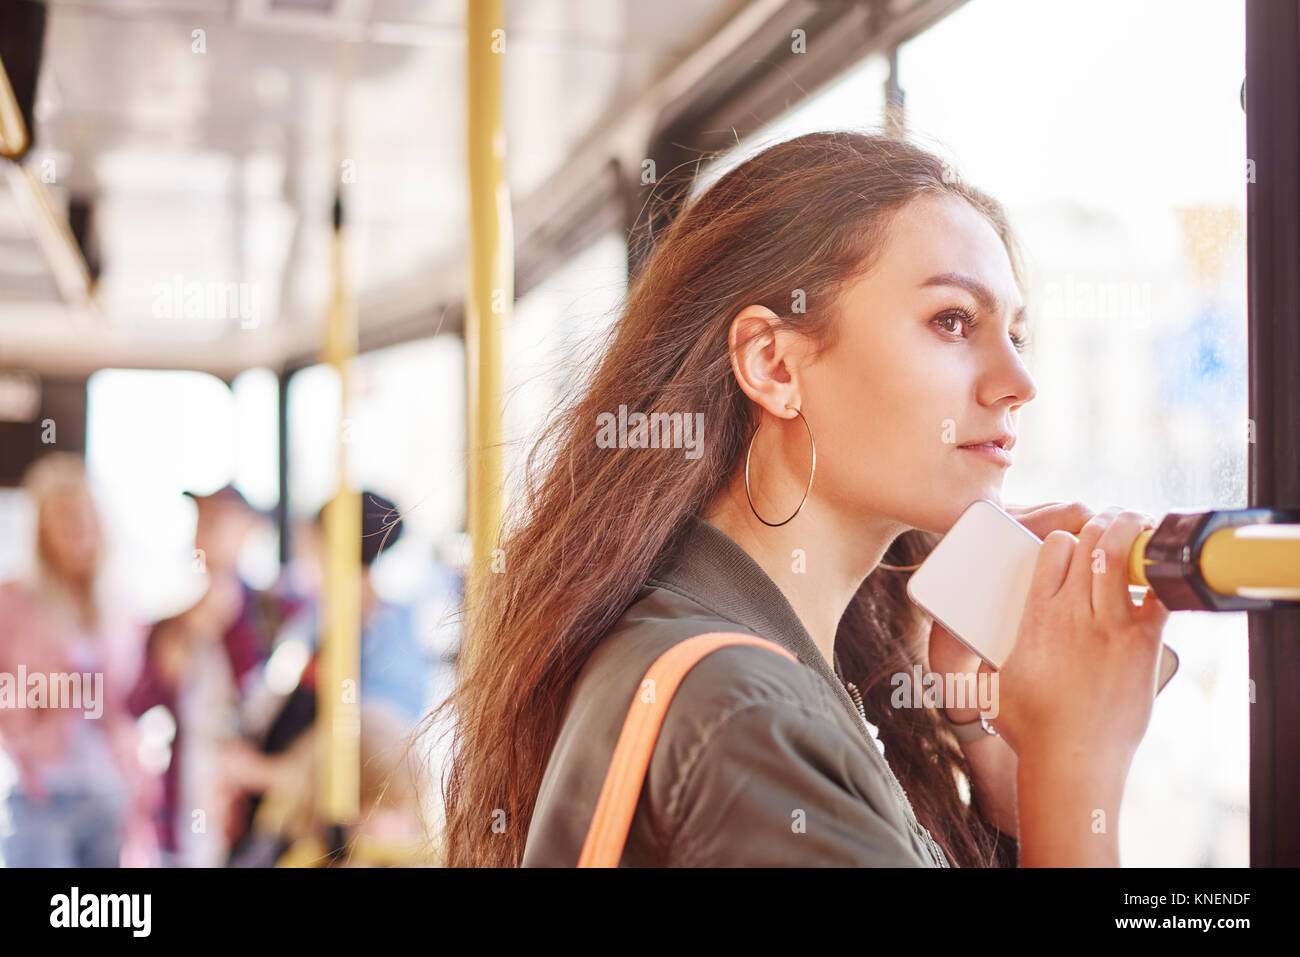 Young woman on city tram gazing out through window - Stock Image